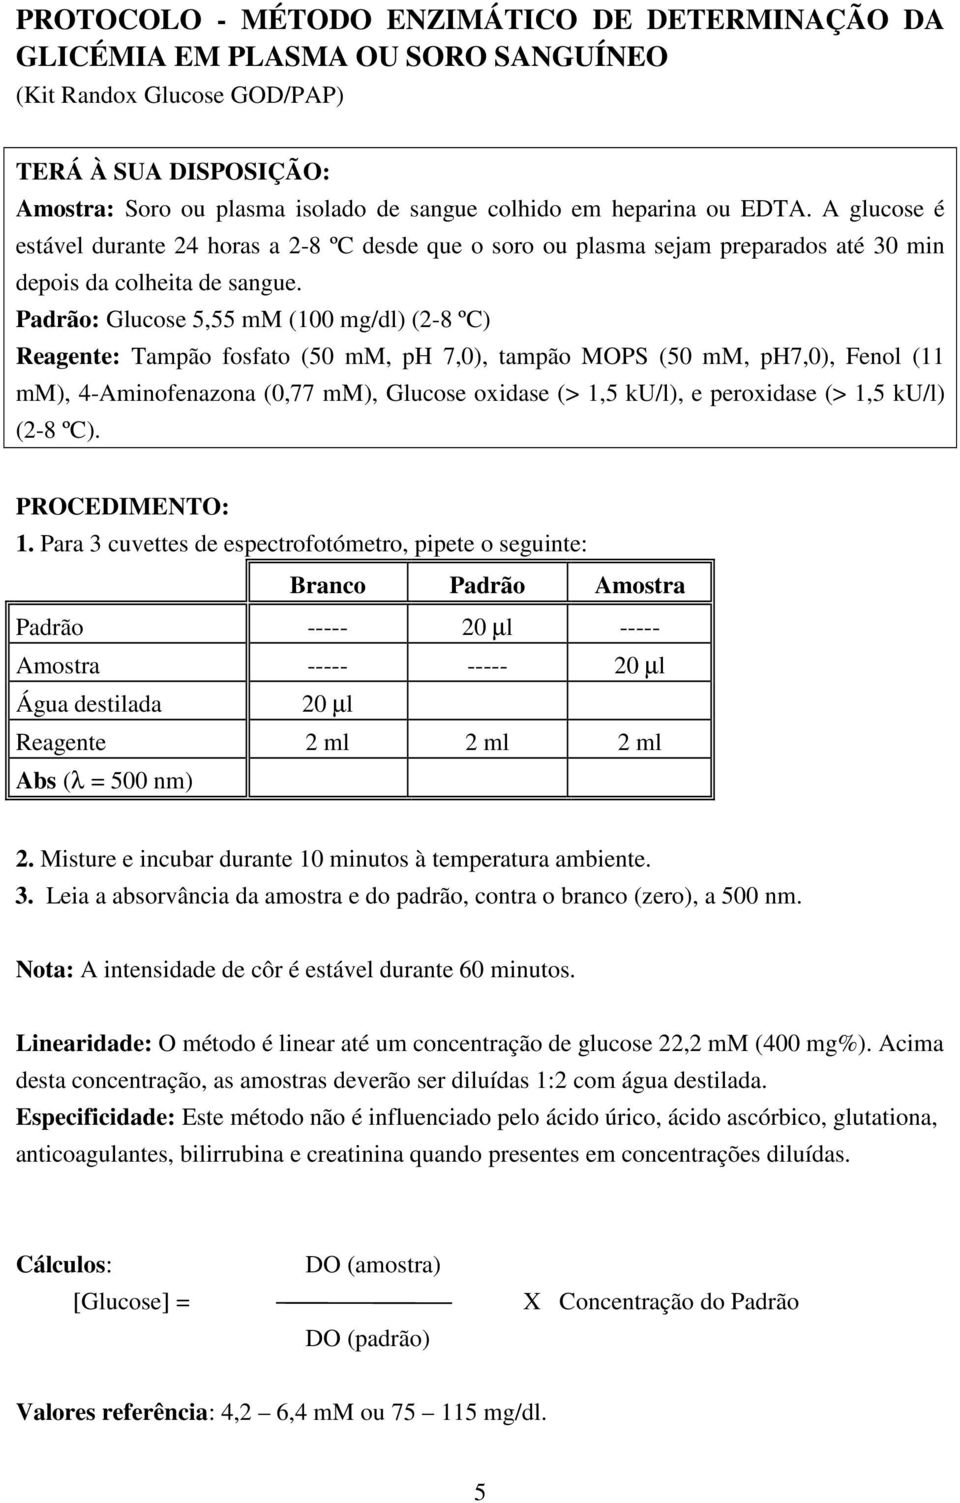 Padrão: Glucose 5,55 mm (100 mg/dl) (2-8 ºC) Reagente: Tampão fosfato (50 mm, ph 7,0), tampão MOPS (50 mm, ph7,0), Fenol (11 mm), 4-Aminofenazona (0,77 mm), Glucose oxidase (> 1,5 ku/l), e peroxidase